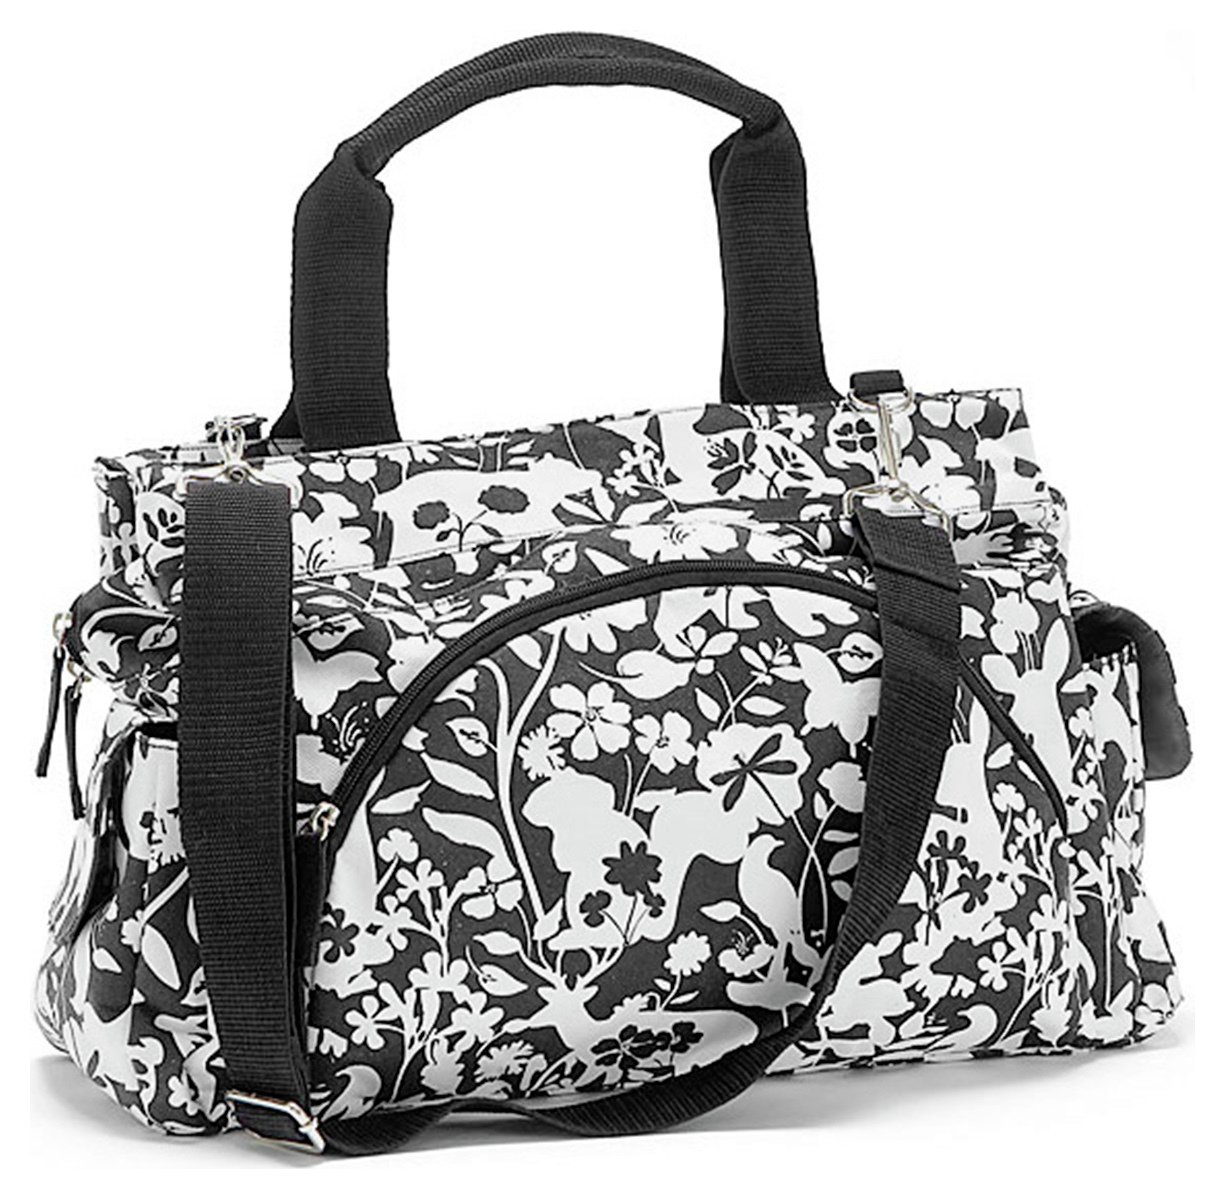 Summer Infant Easton Tote Travel and Changing Bag.